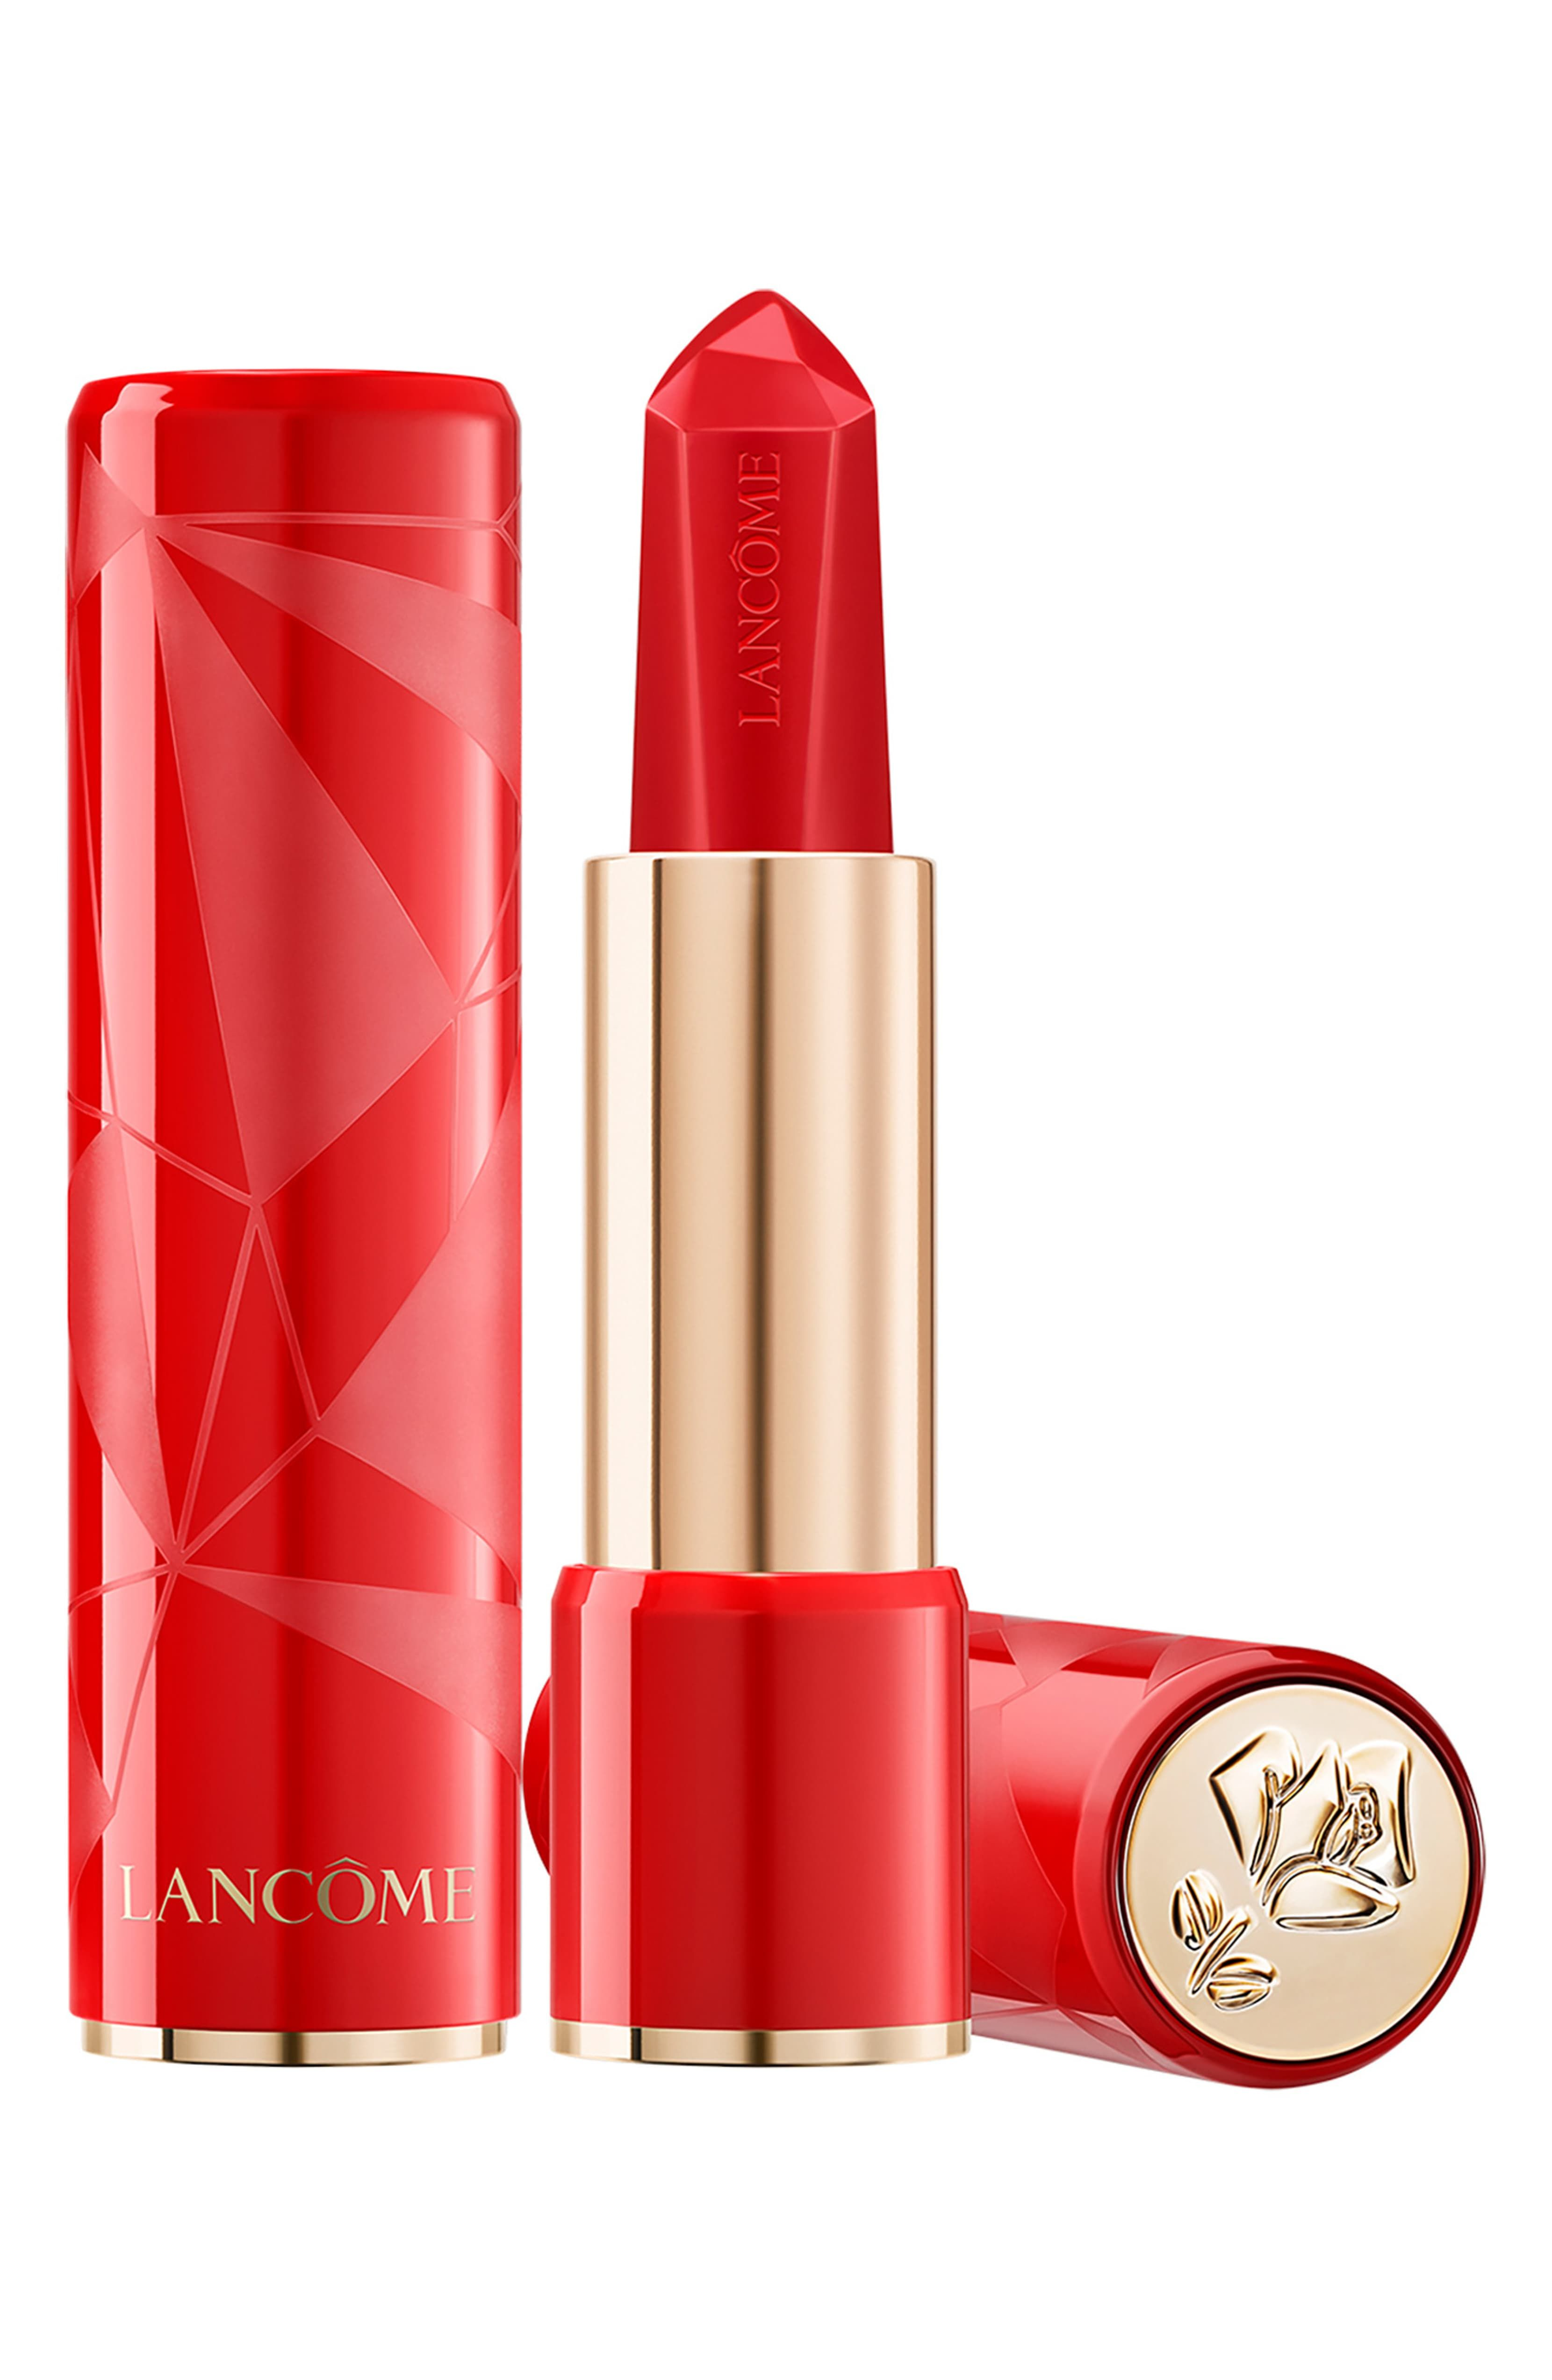 Lancôme L'Absolu Rouge Ruby Cream Lipstick (Limited